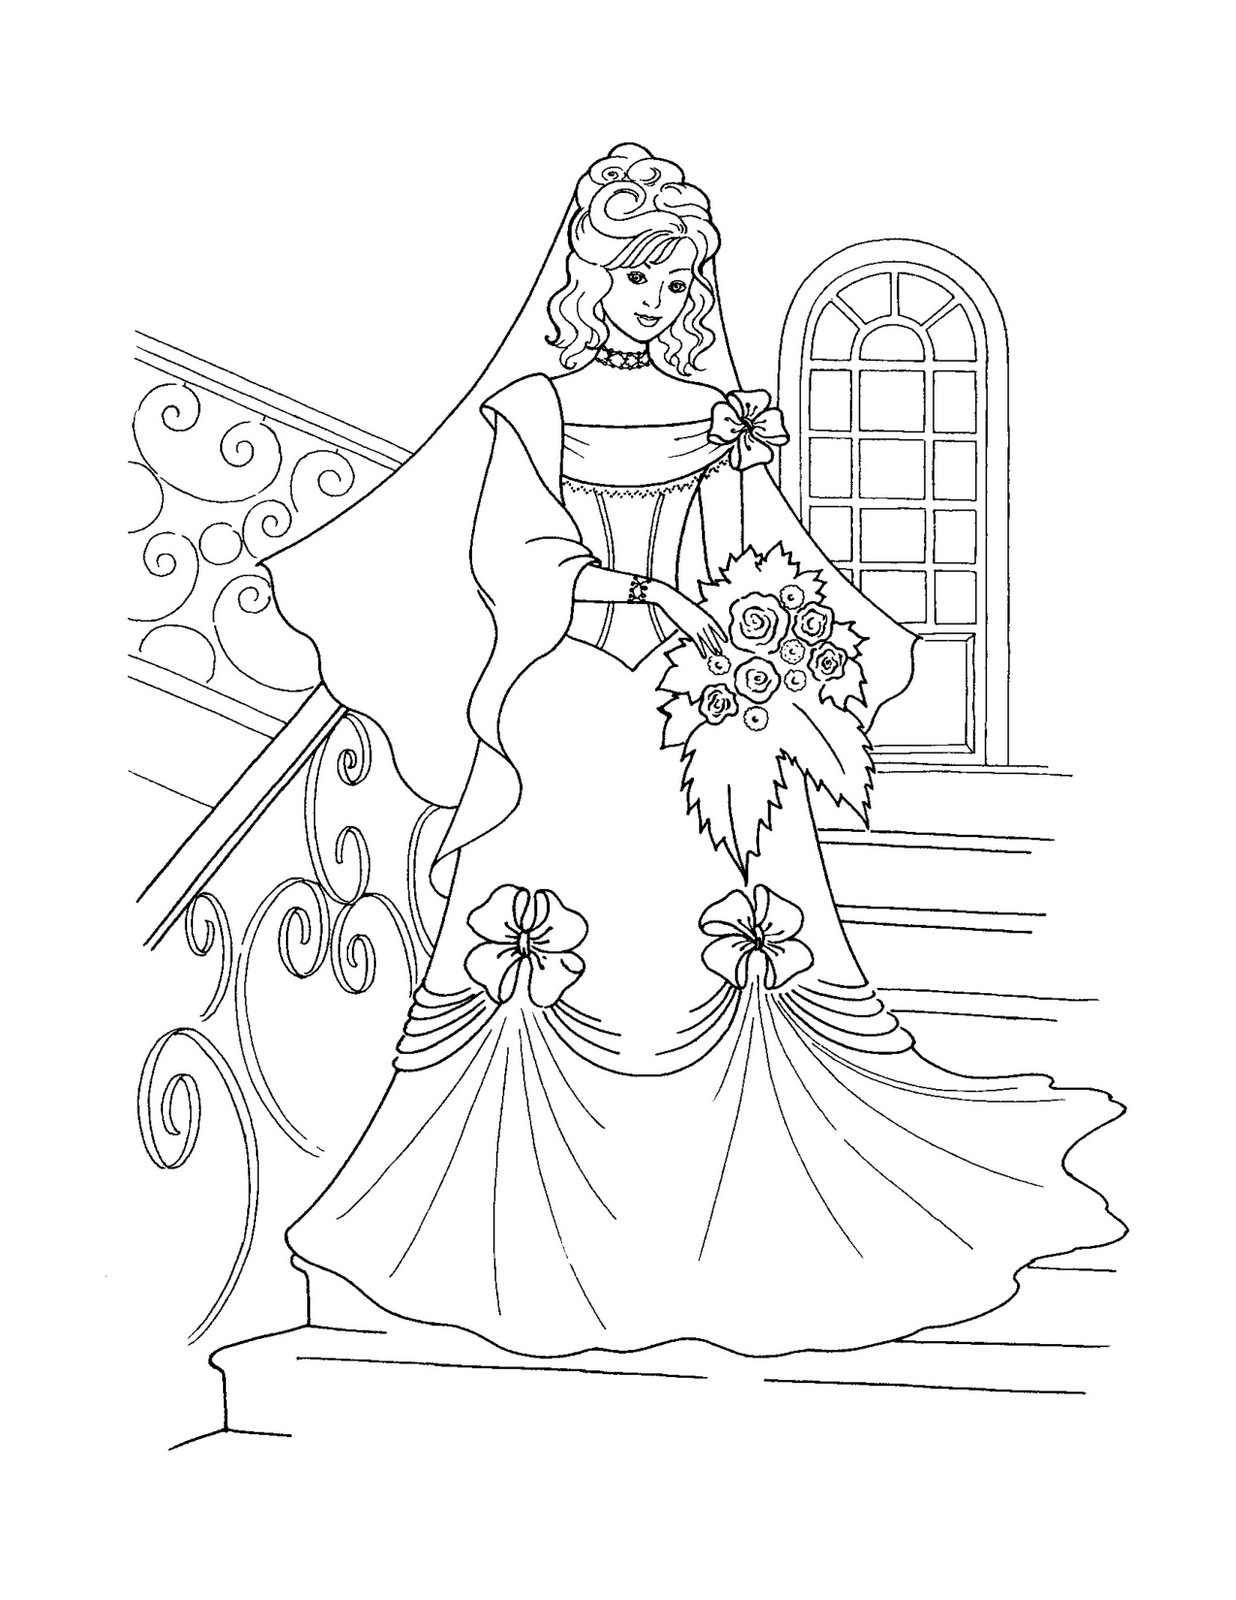 coloring princess drawing for kids beauty princess coloring pages for kids printable free drawing kids for coloring princess